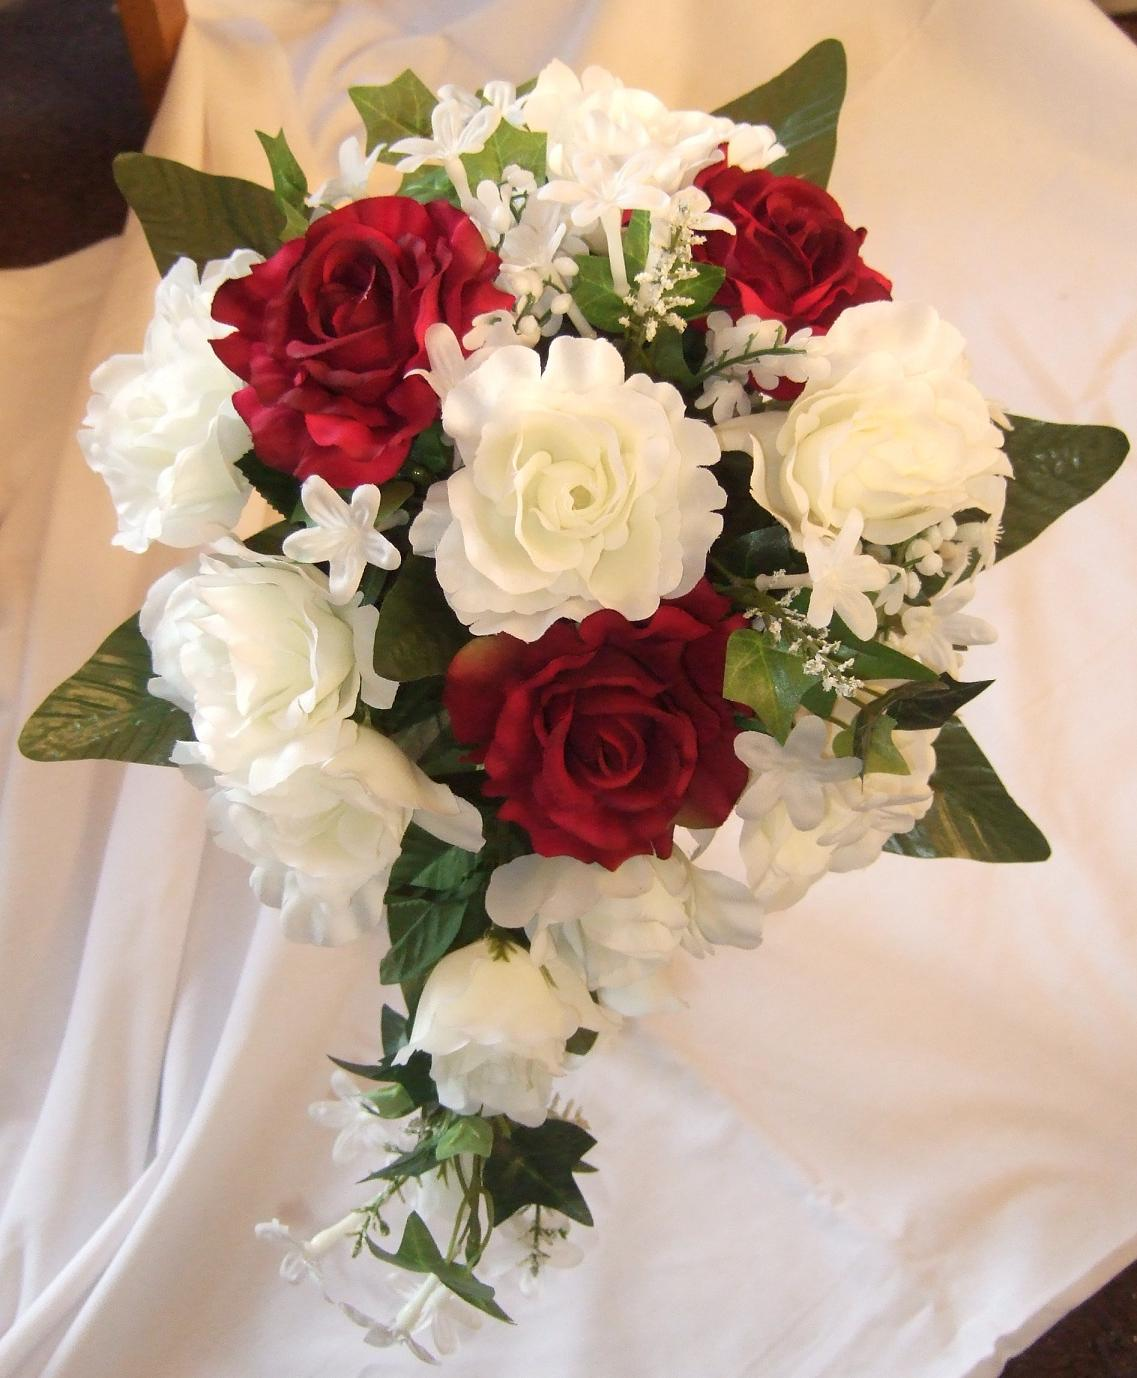 Ideas For Wedding Flowers: About Marriage: Marriage Flower Bouquet 2013